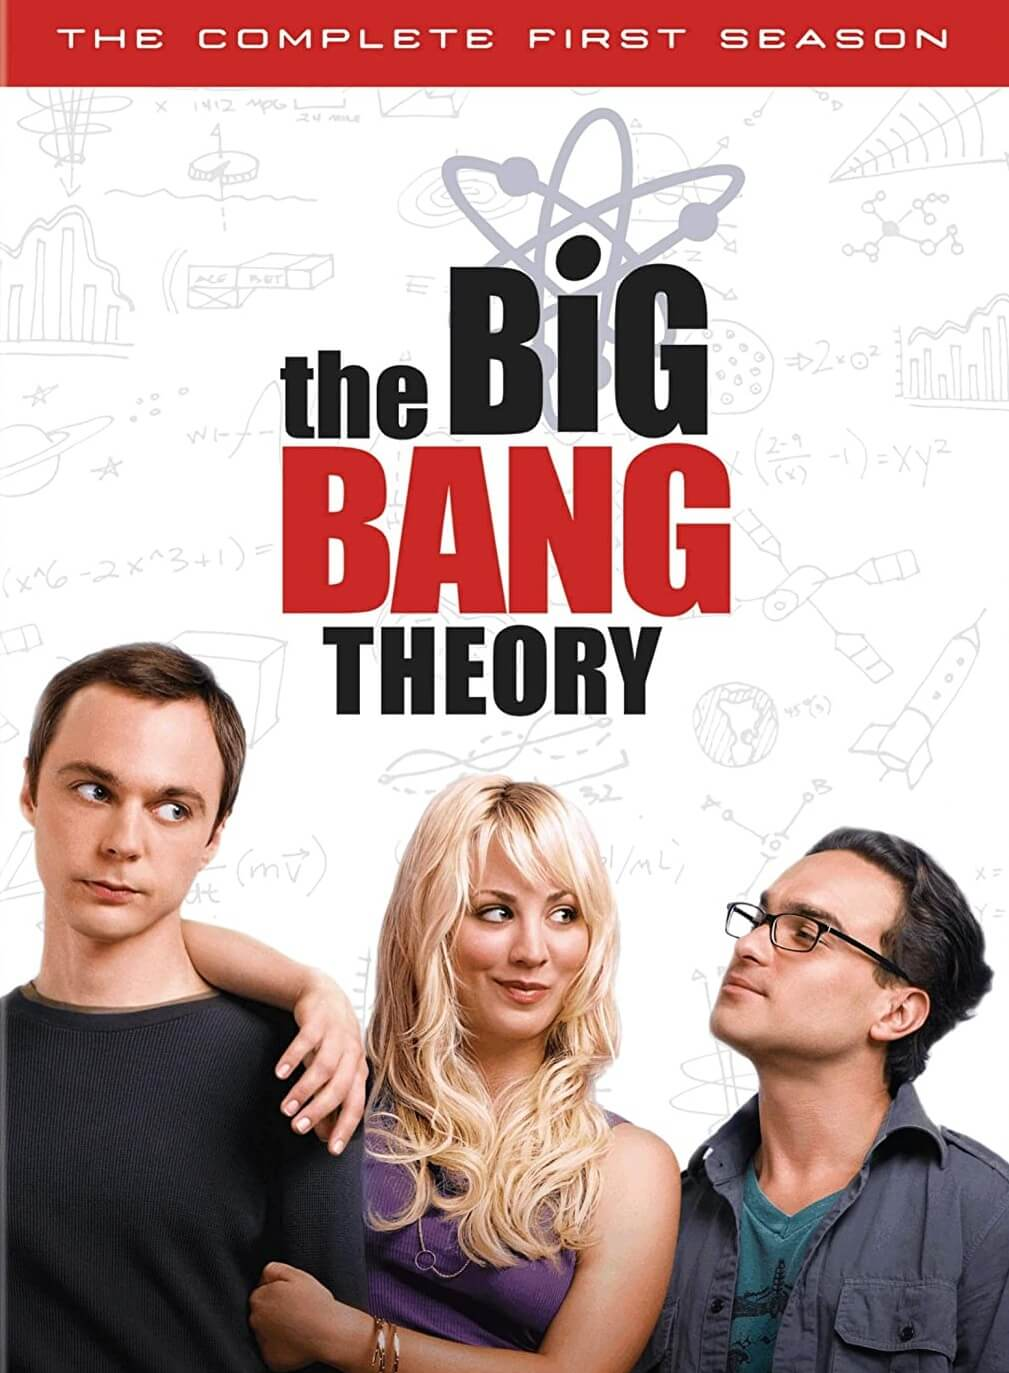 The Big Bang Theory S01 E15